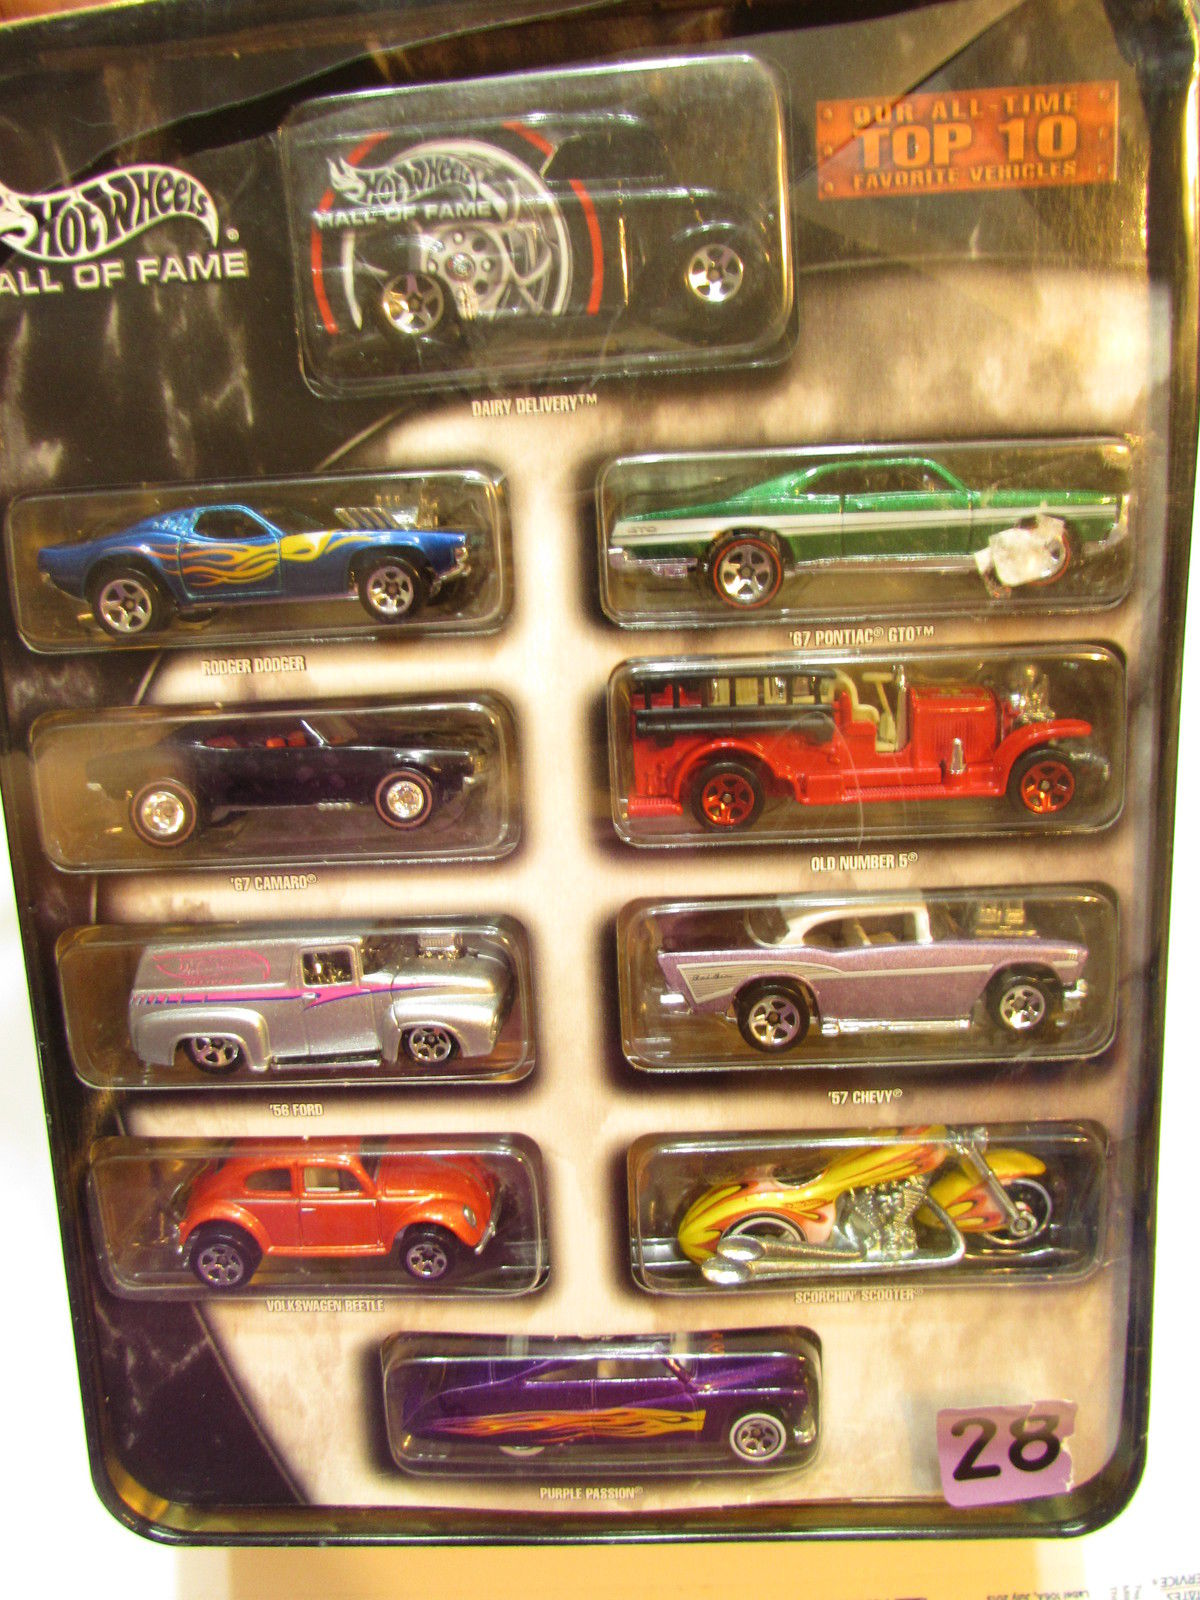 HOT WHEELS HALL OF FAME 10 CAR PACK DAIRY DELIVERY '67 CAMARO TIN BOX